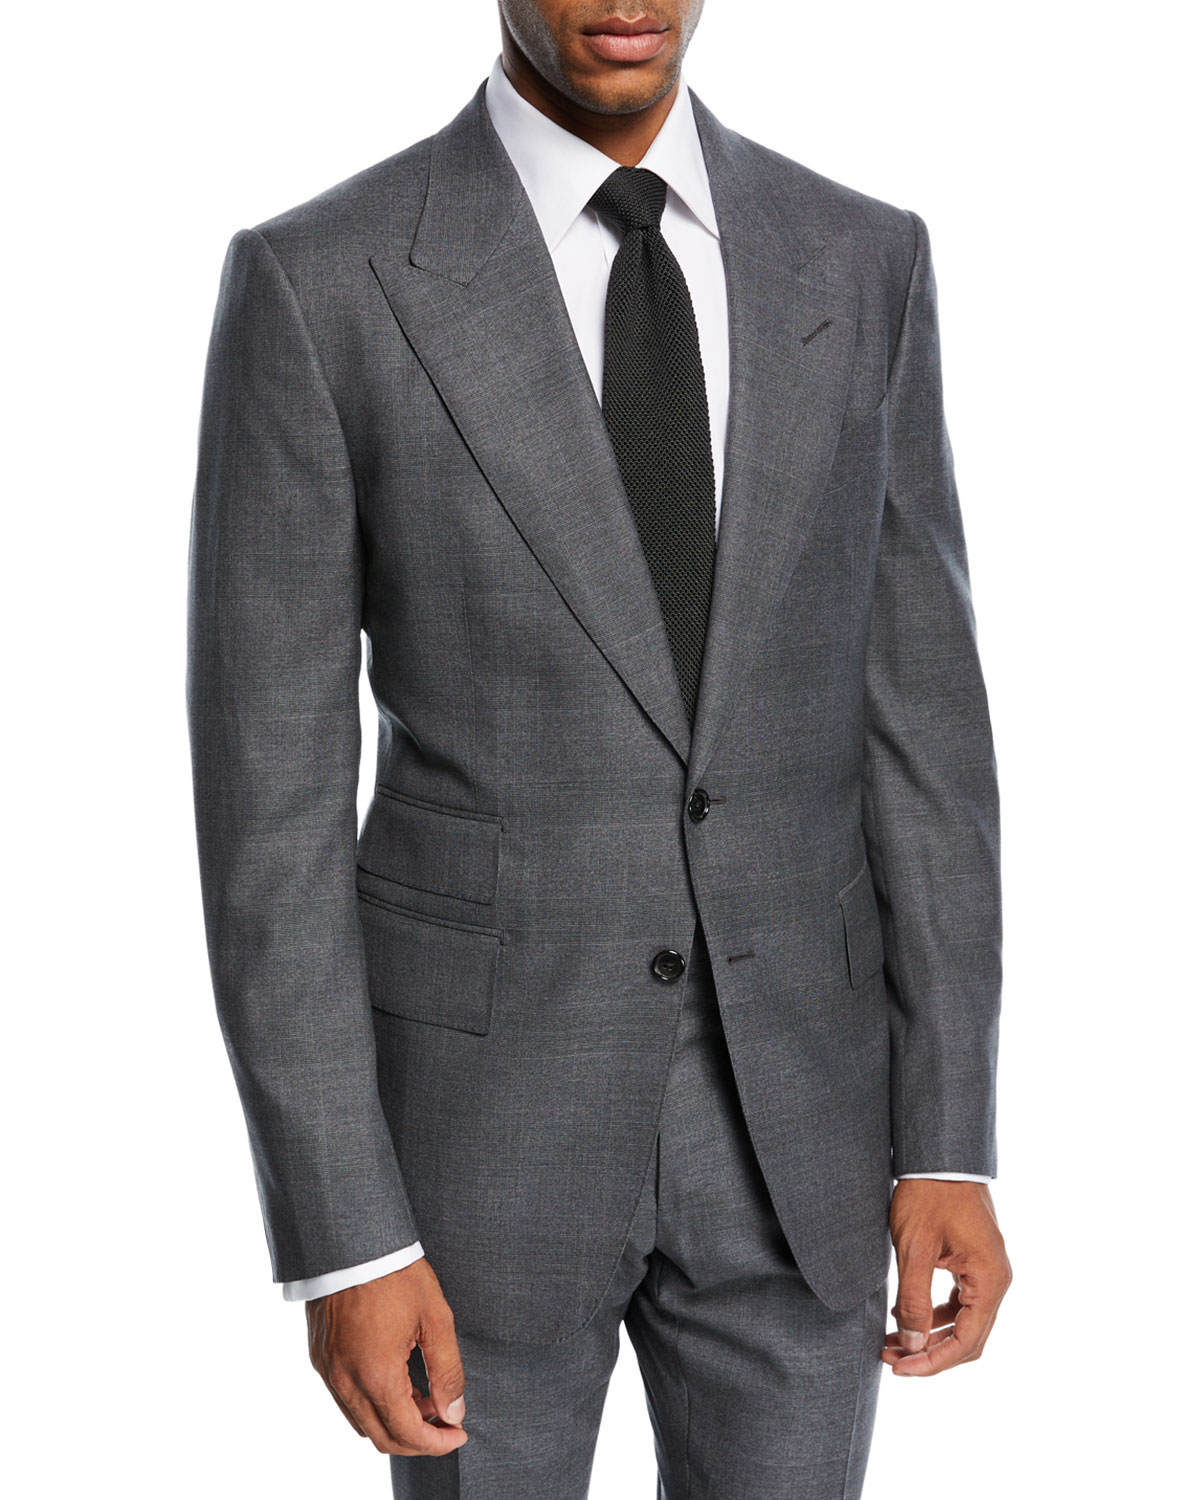 Tom Ford Shelton Tonal Prince Of Wales Plaid Wool Suit